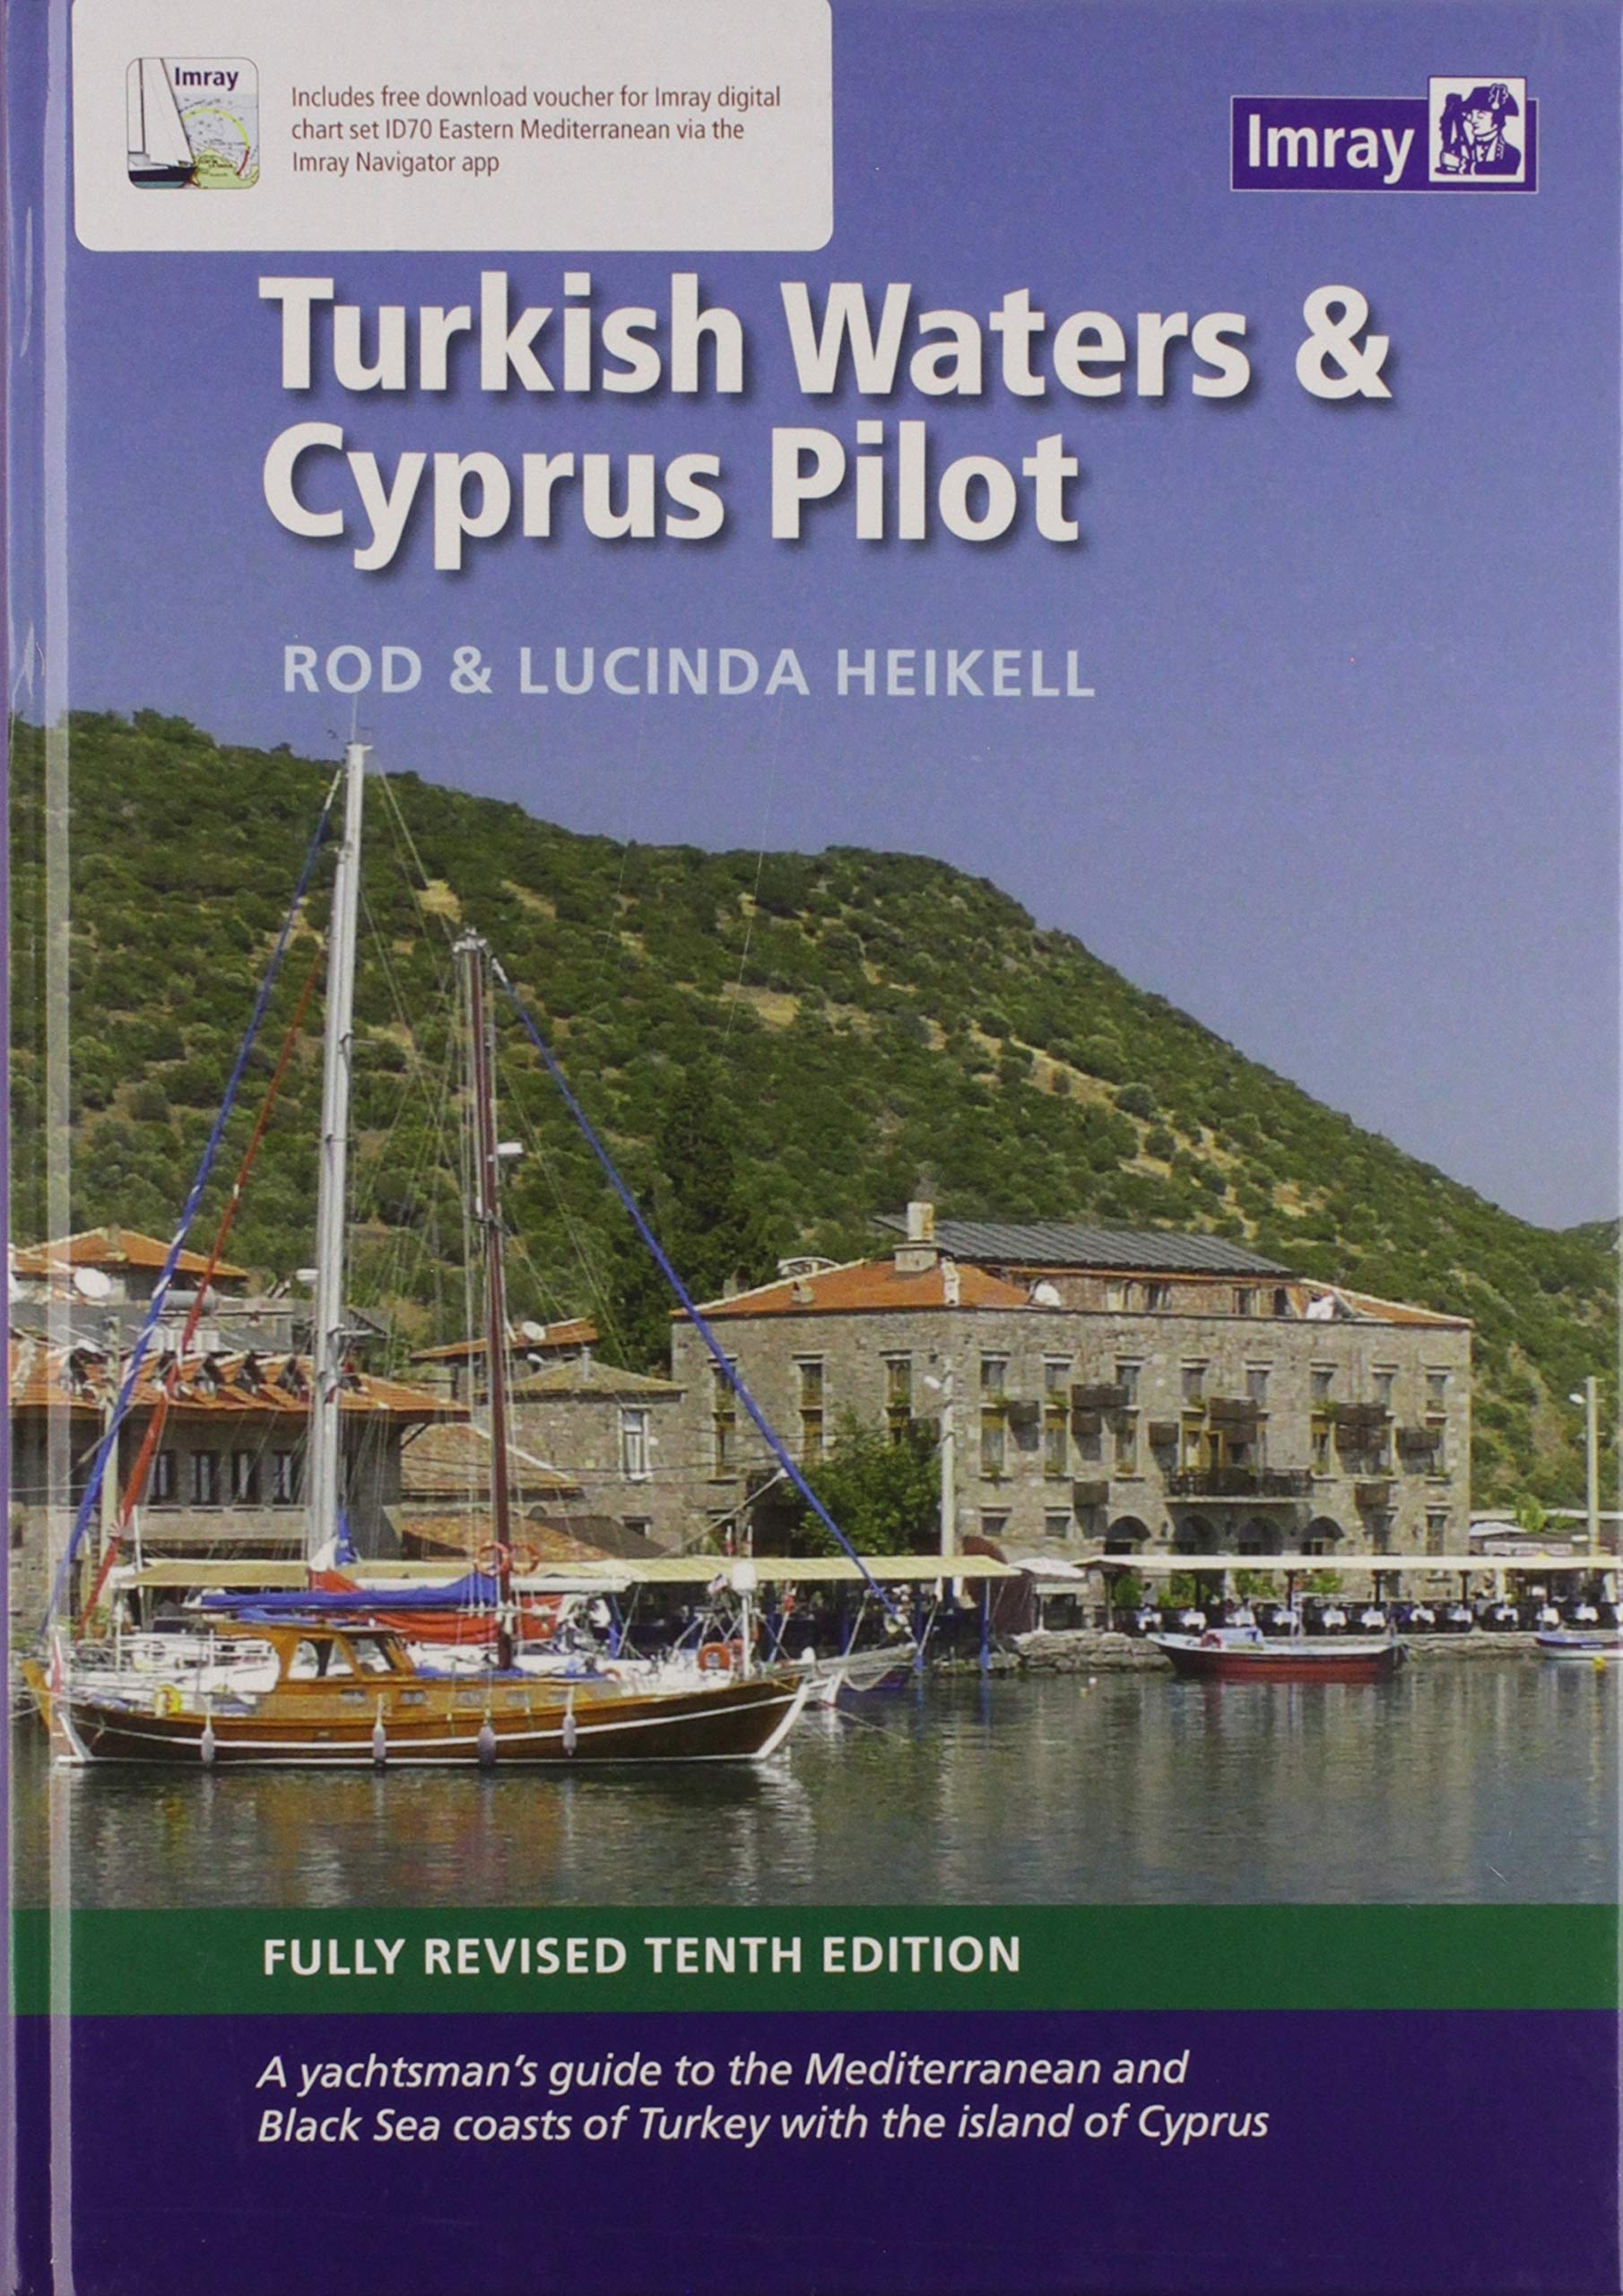 Image OfTurkish Waters And Cyprus Pilot (10th Edition)